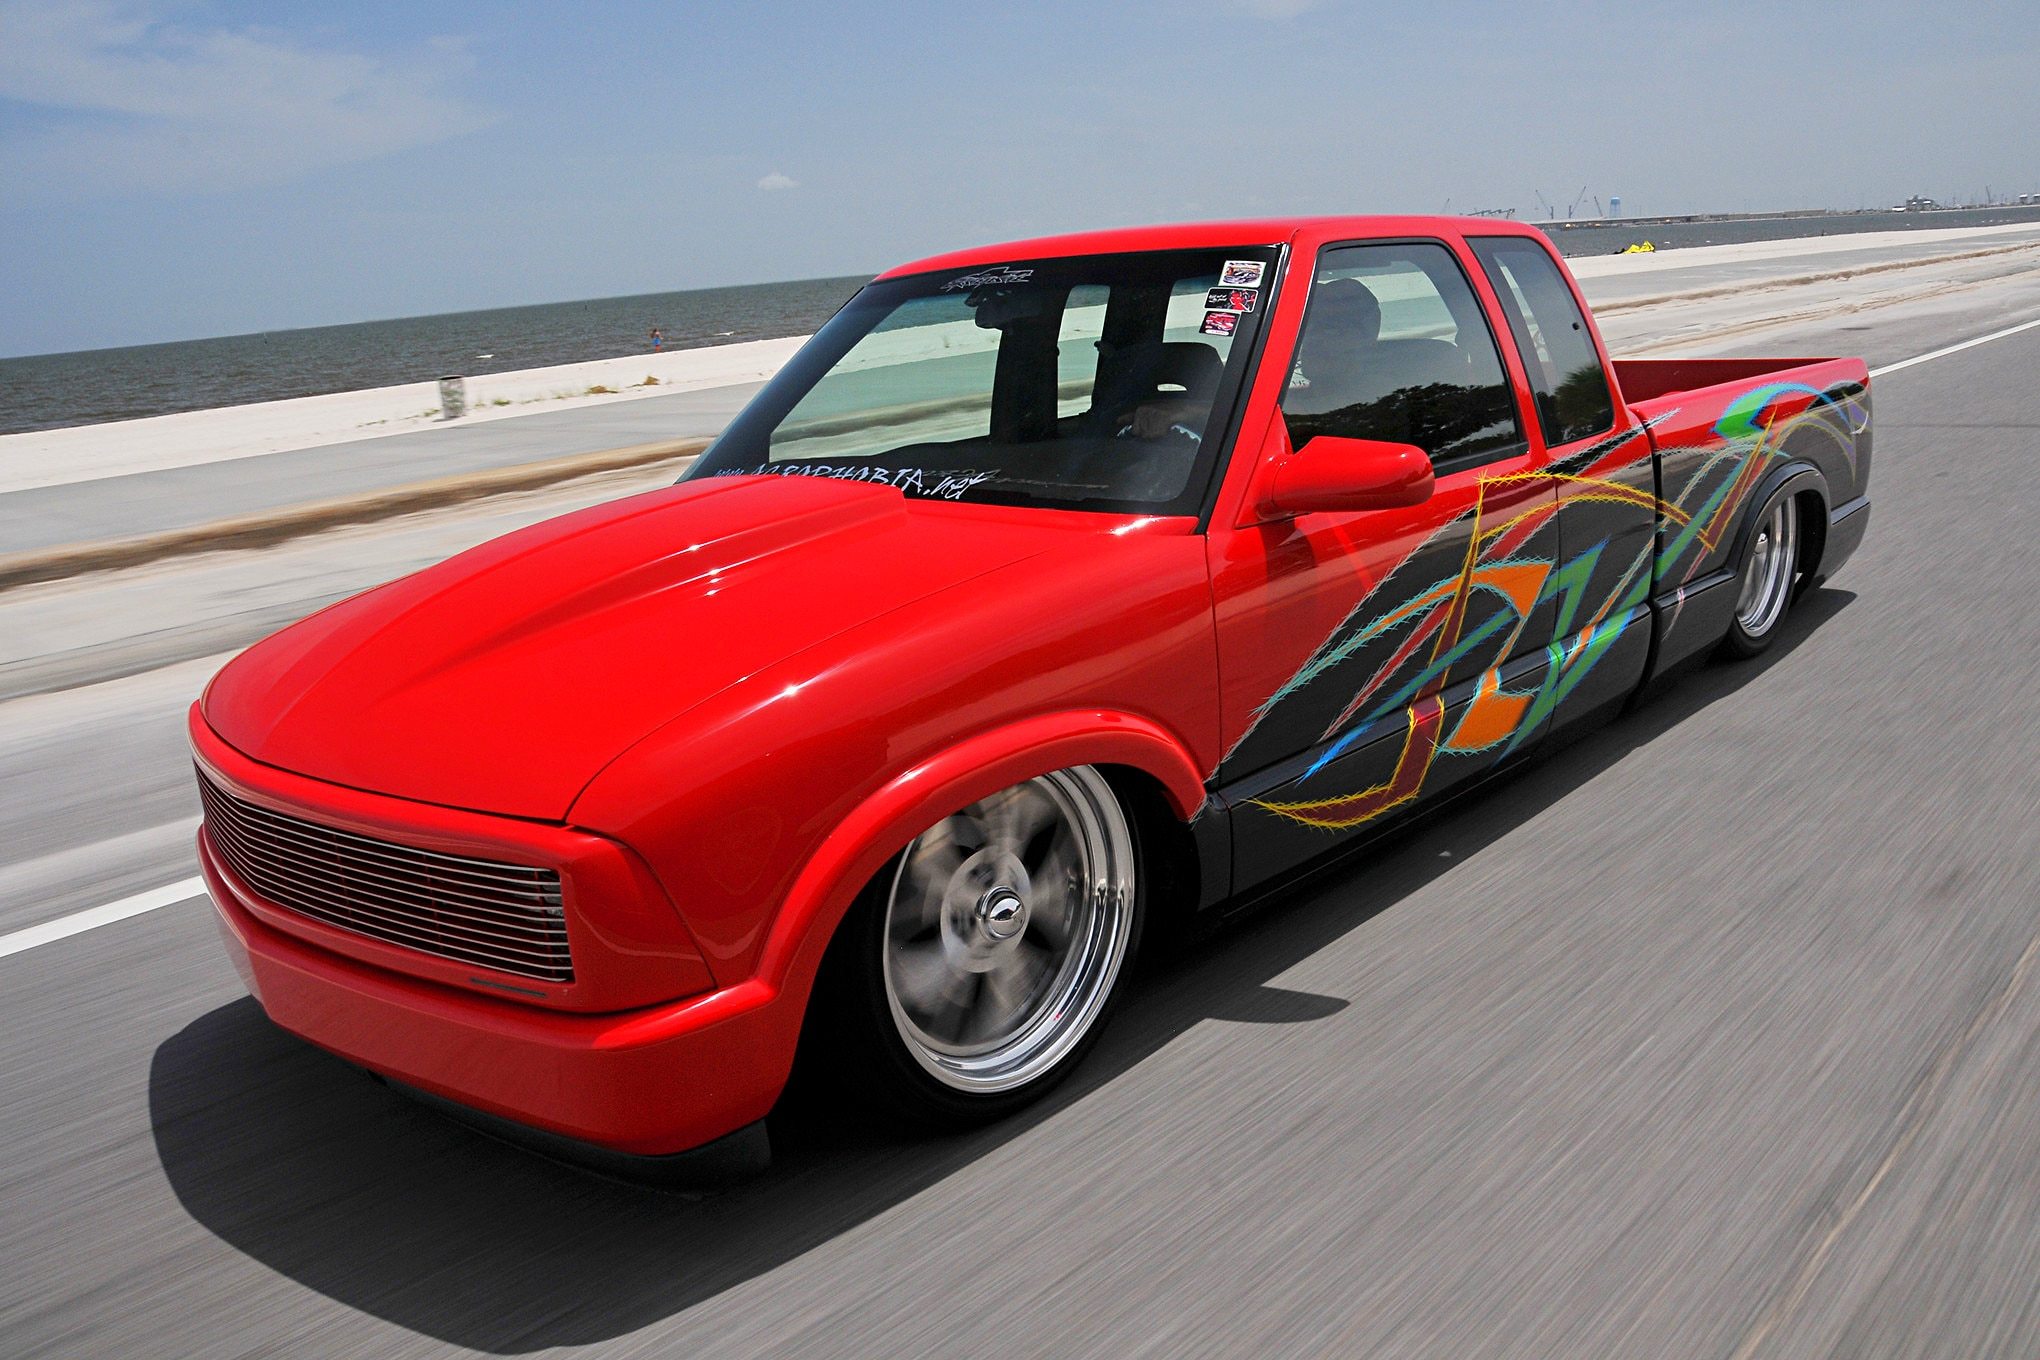 1996 chevy s10 little red devil truck trend